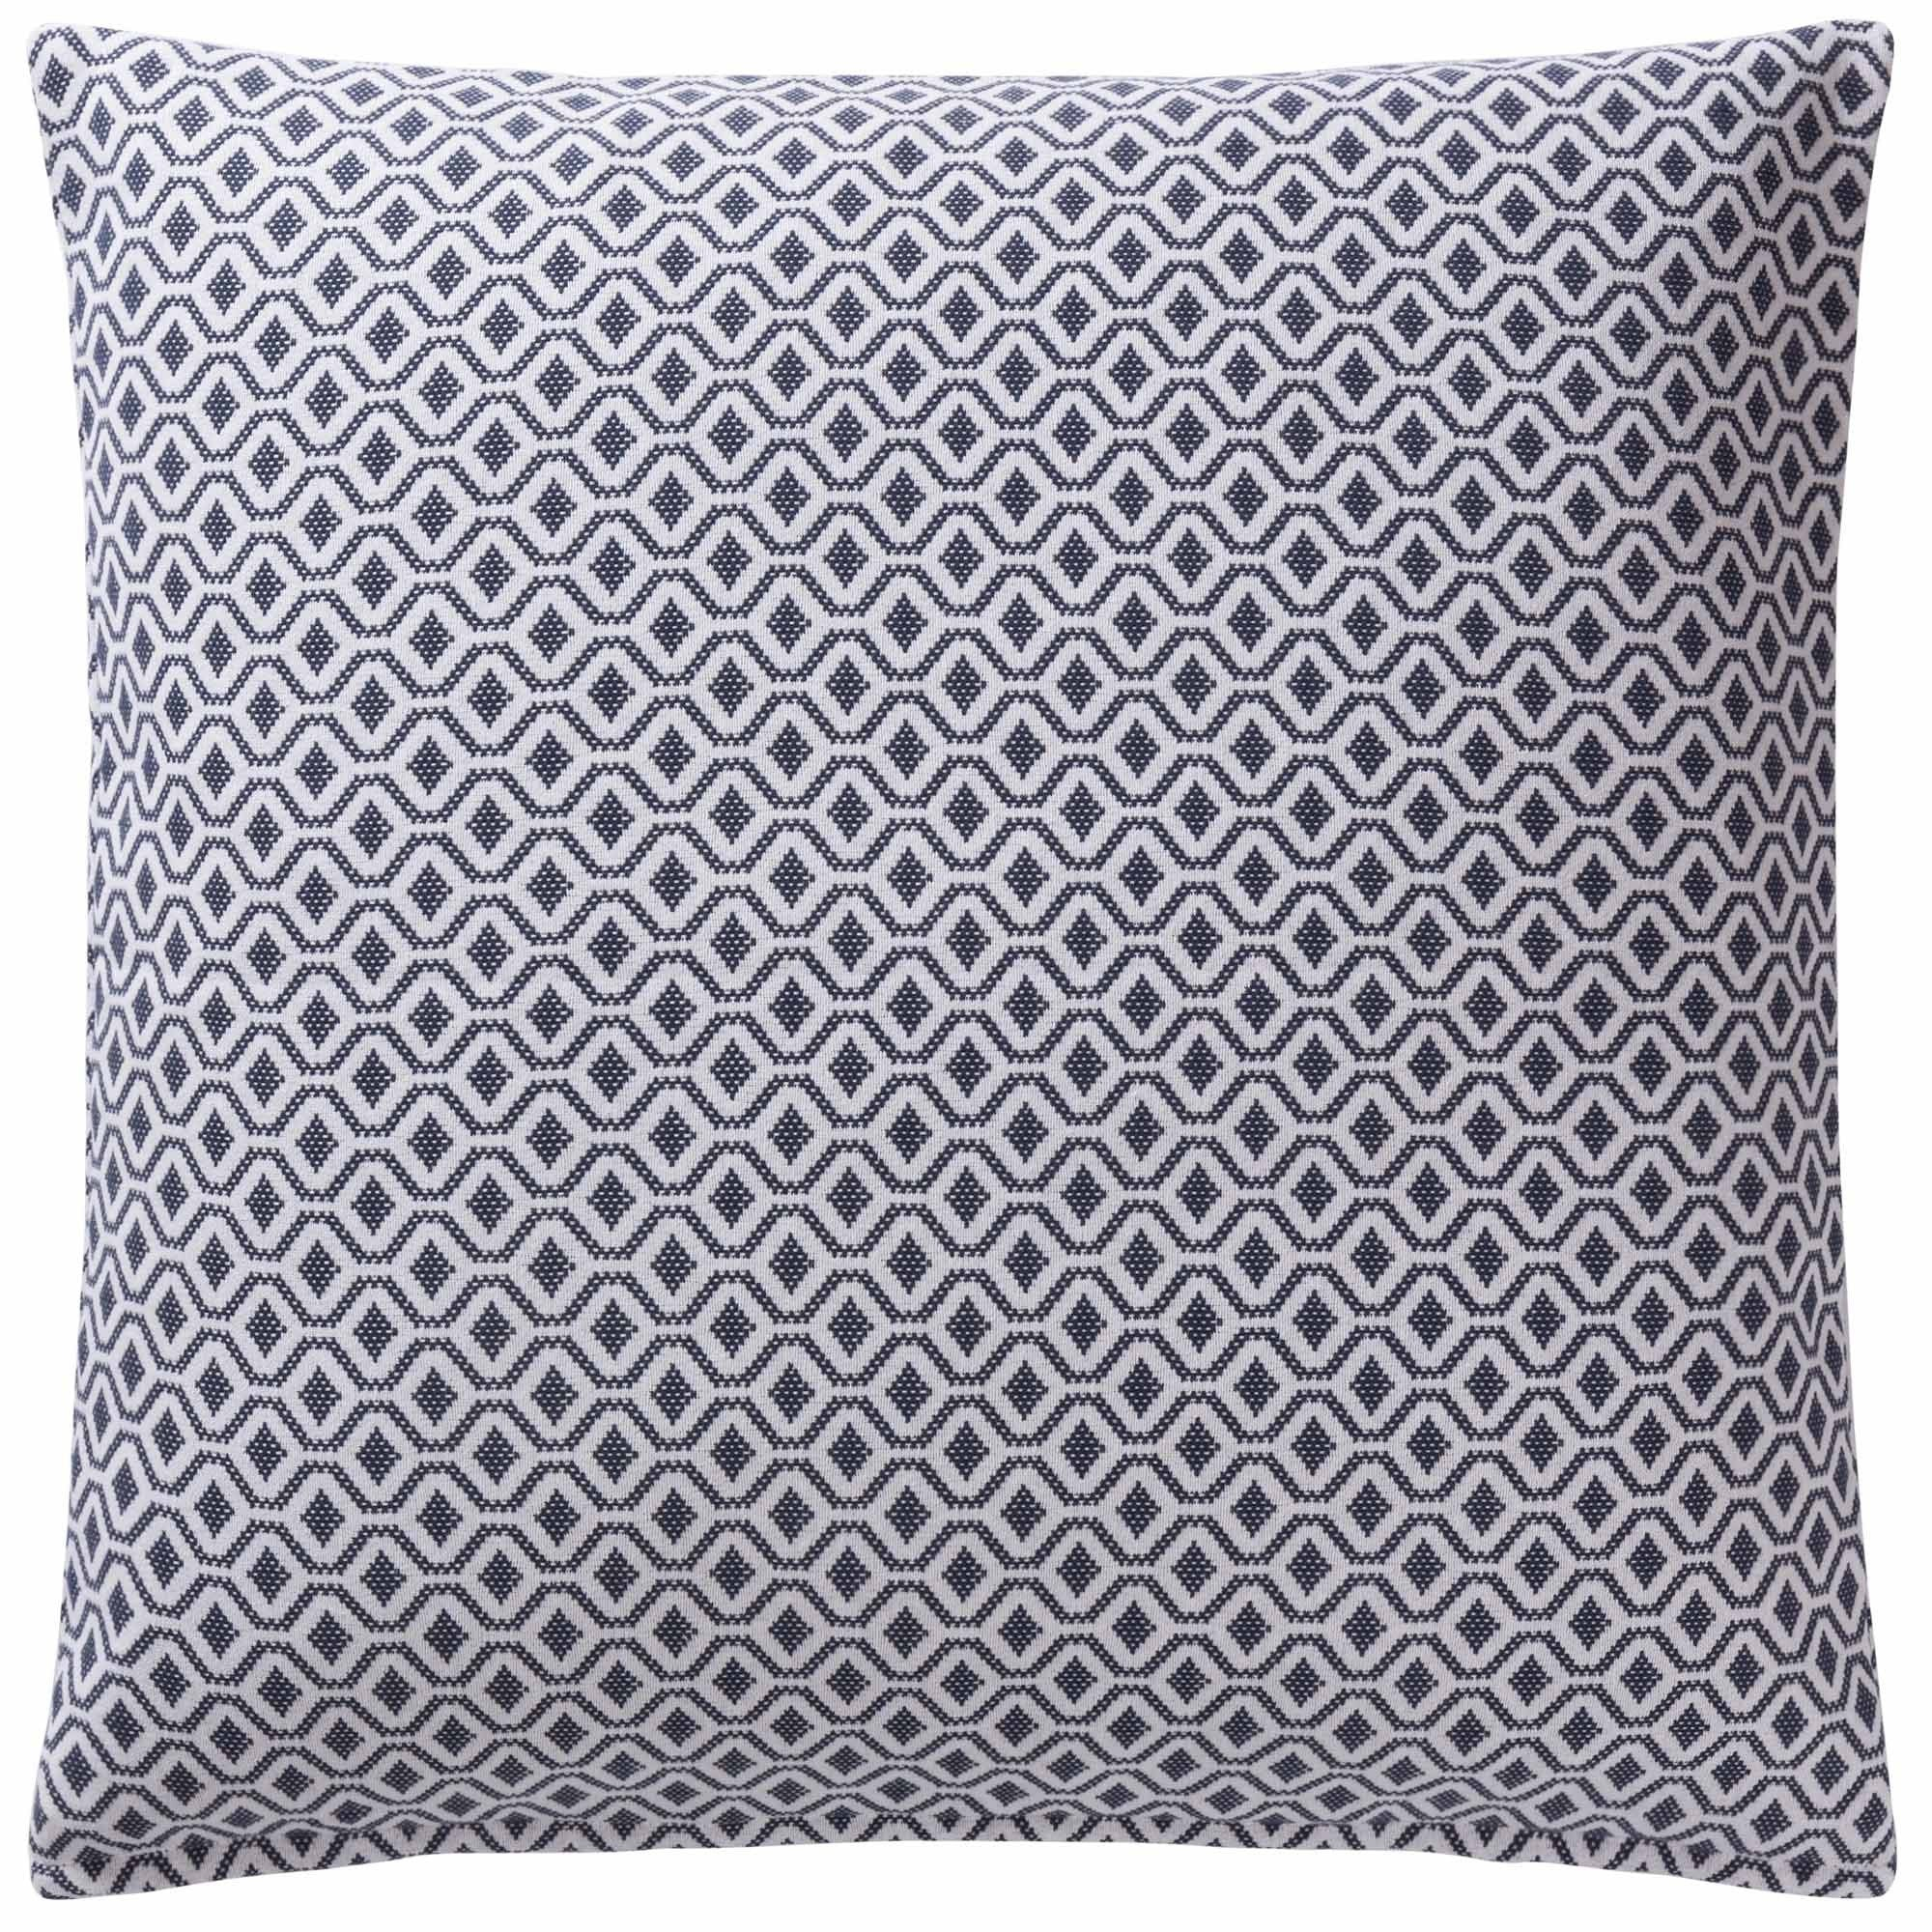 Viana cushion cover, blue grey & white, 100% cotton